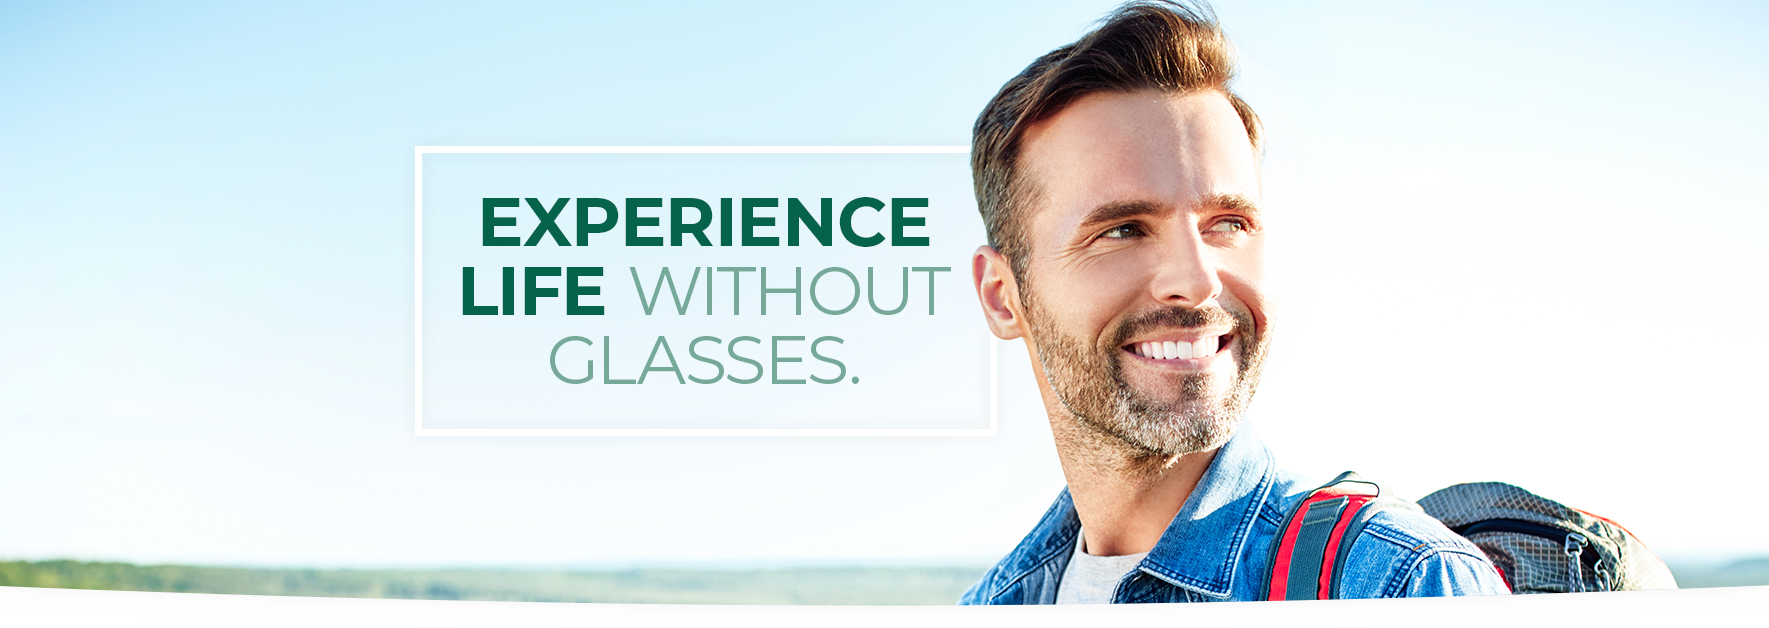 Experience life without glasses.